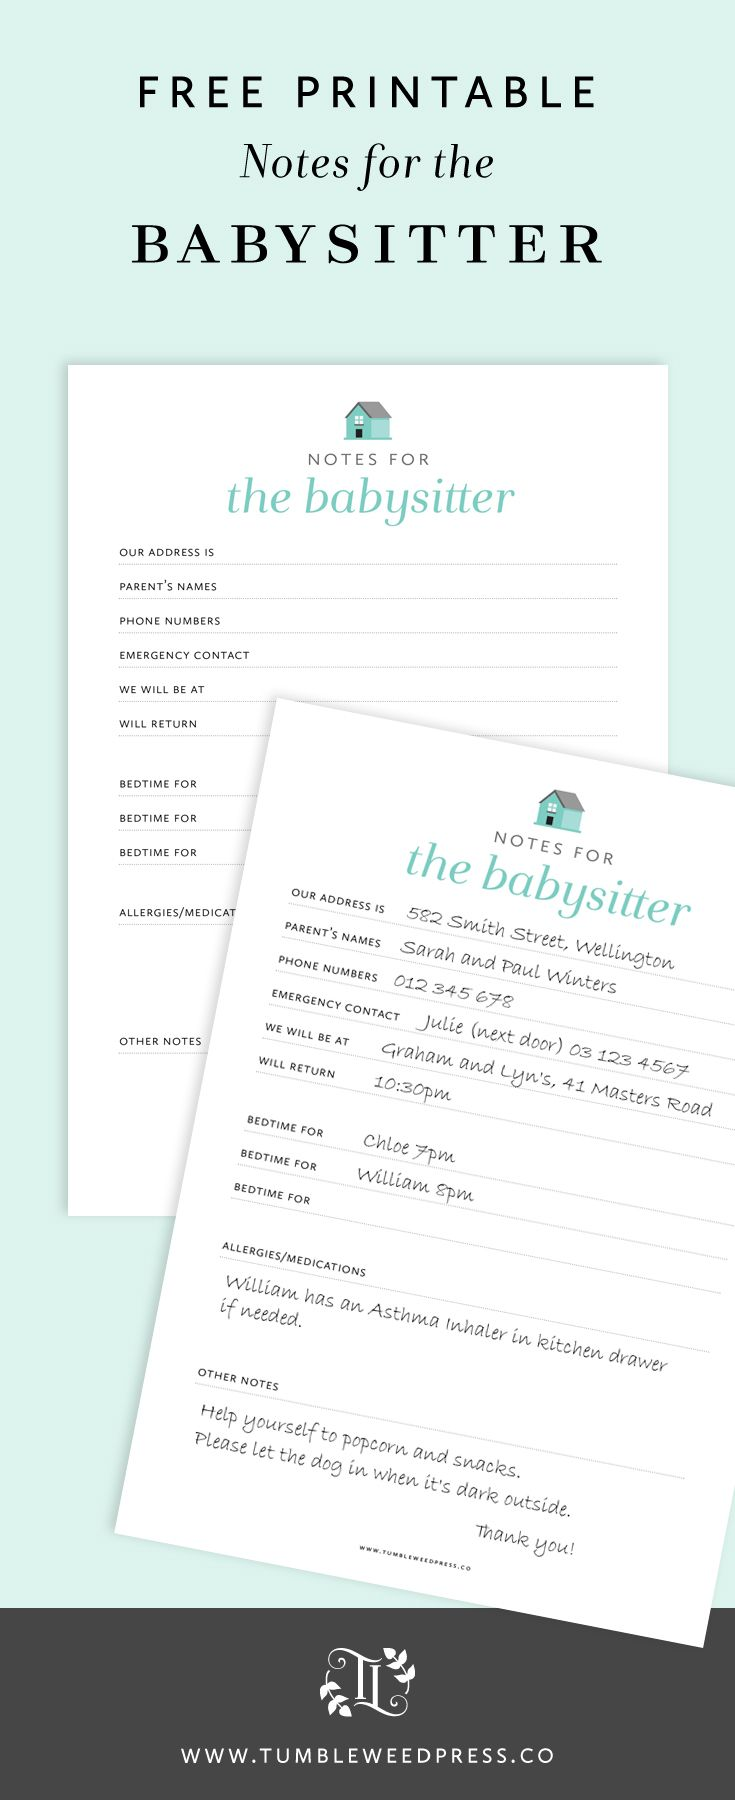 Worksheets Babysitting Worksheets best 25 babysitter printable ideas on pinterest notes free printable